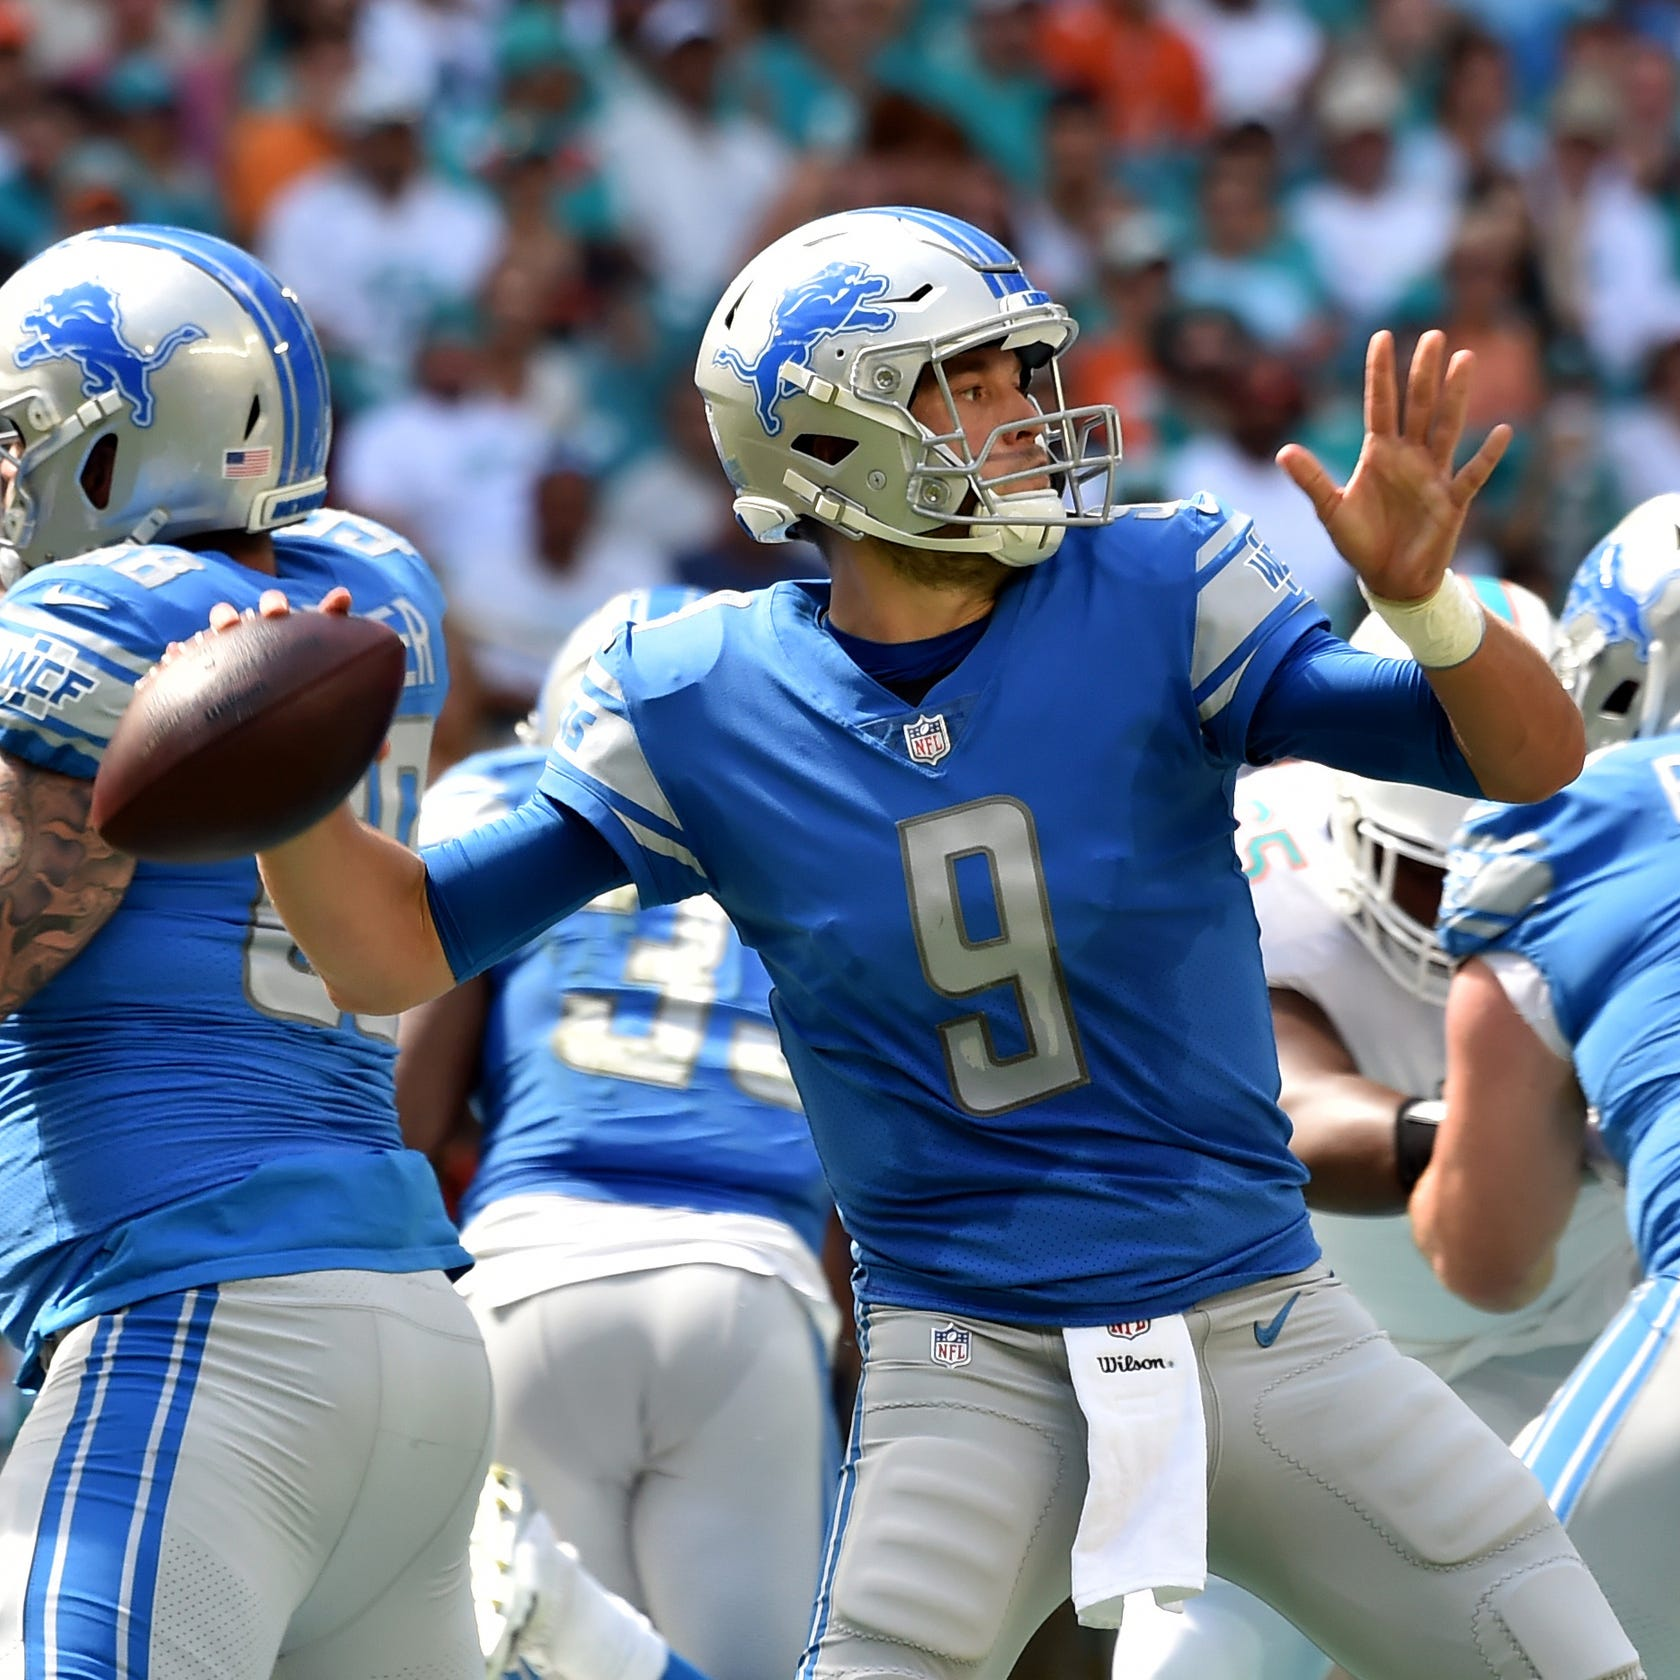 Lions quarterback Matthew Stafford throws a pass against the Dolphins during the first half on Sunday, Oct. 21, 2018, in Miami Gardens, Fla.